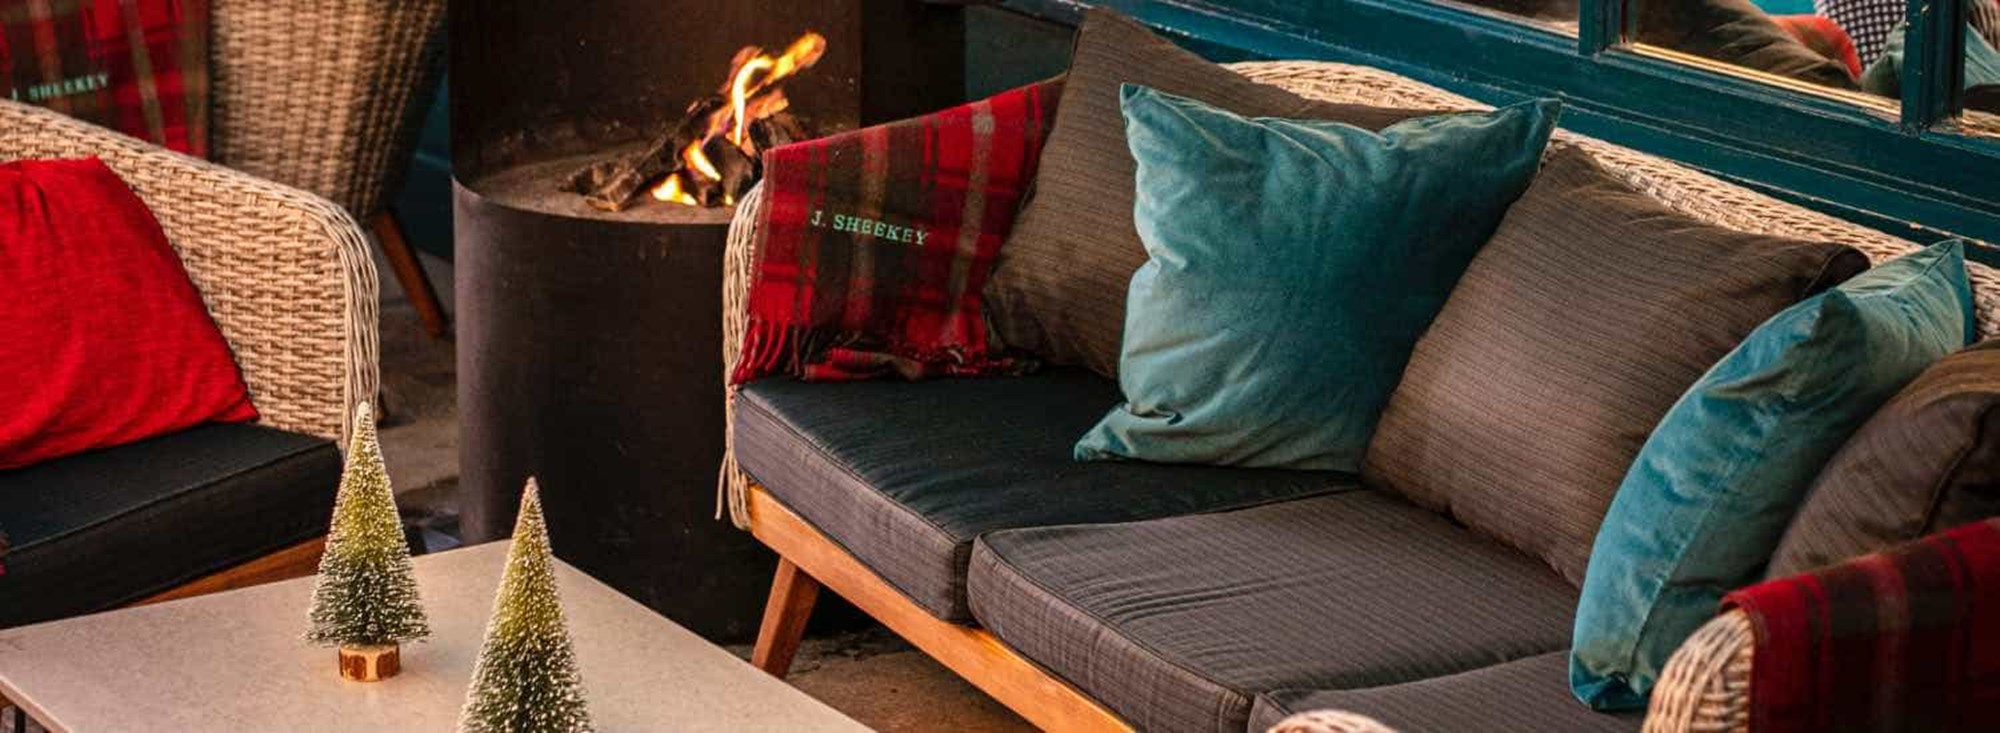 Tartan blankets and throws and a crackling fire ensure a warm and cozy experience in the West End